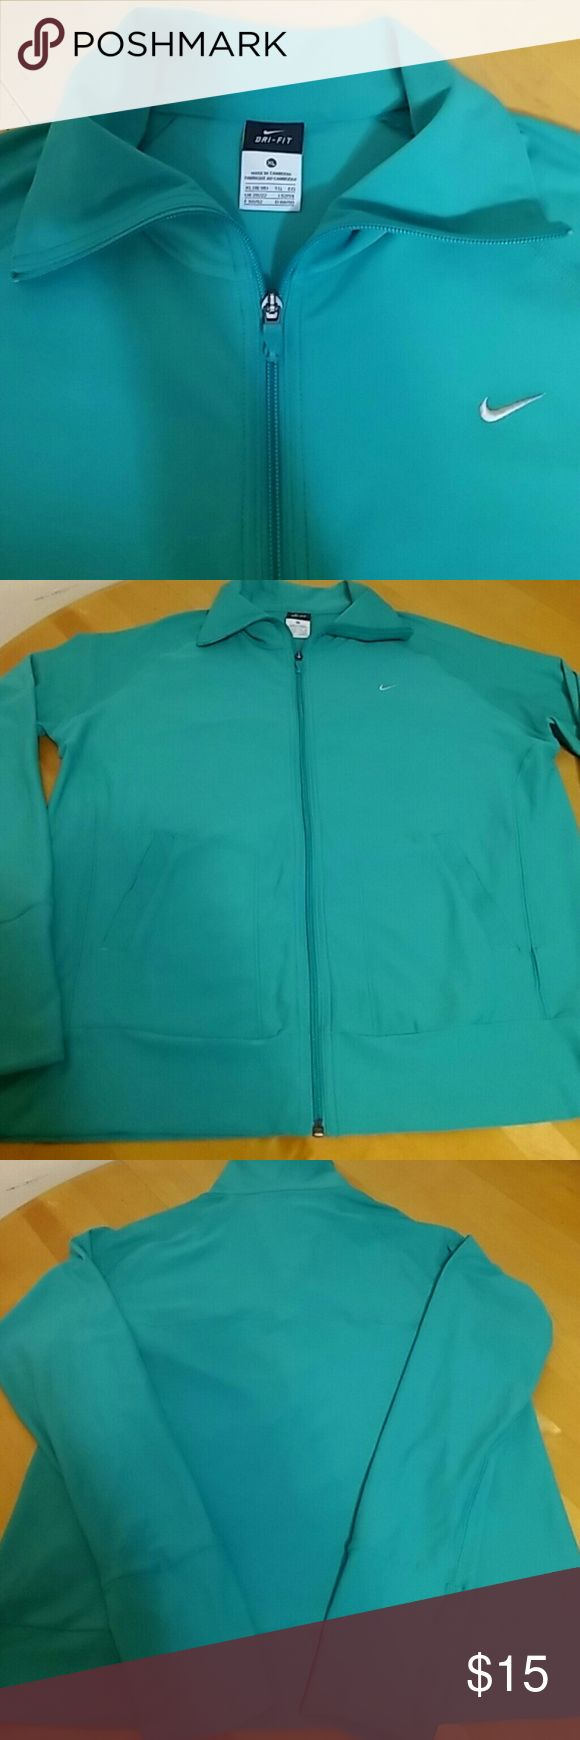 Nike Dri-Fit XL Nike Dri-Fit Jacket for Women's, Size XL, 92% Polyester,  8% Spandex, used gently. Color Turquoise. Nike Jackets & Coats Utility Jackets